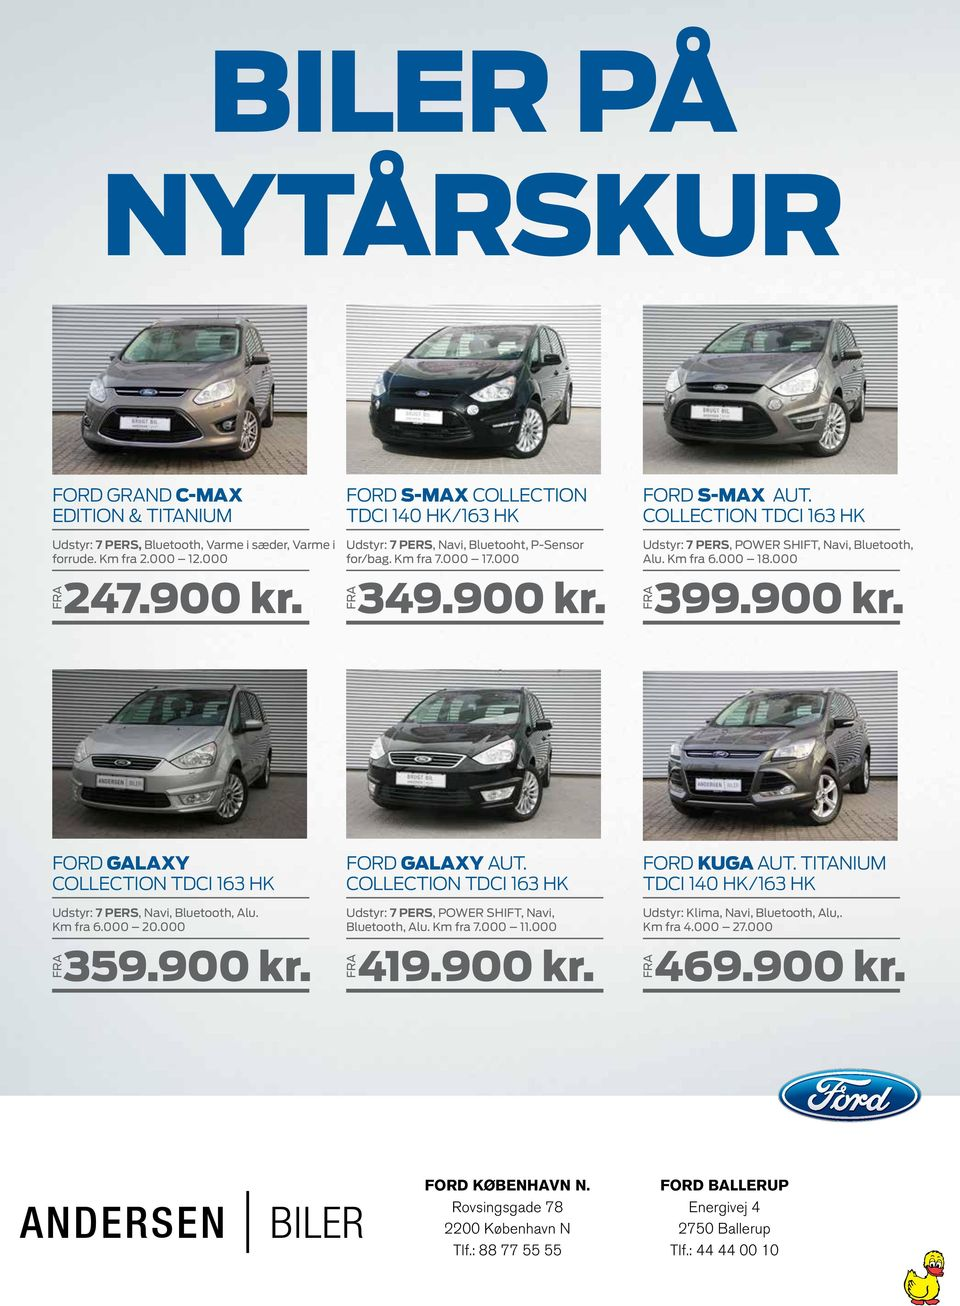 COLLECTION TDCI 163 HK Udstyr: 7 PERS, POWER SHIFT, Navi, Bluetooth, Alu. Km fra 6.000 18.000 399.900 kr. FORD GALAXY COLLECTION TDCI 163 HK Udstyr: 7 PERS, Navi, Bluetooth, Alu. Km fra 6.000 20.